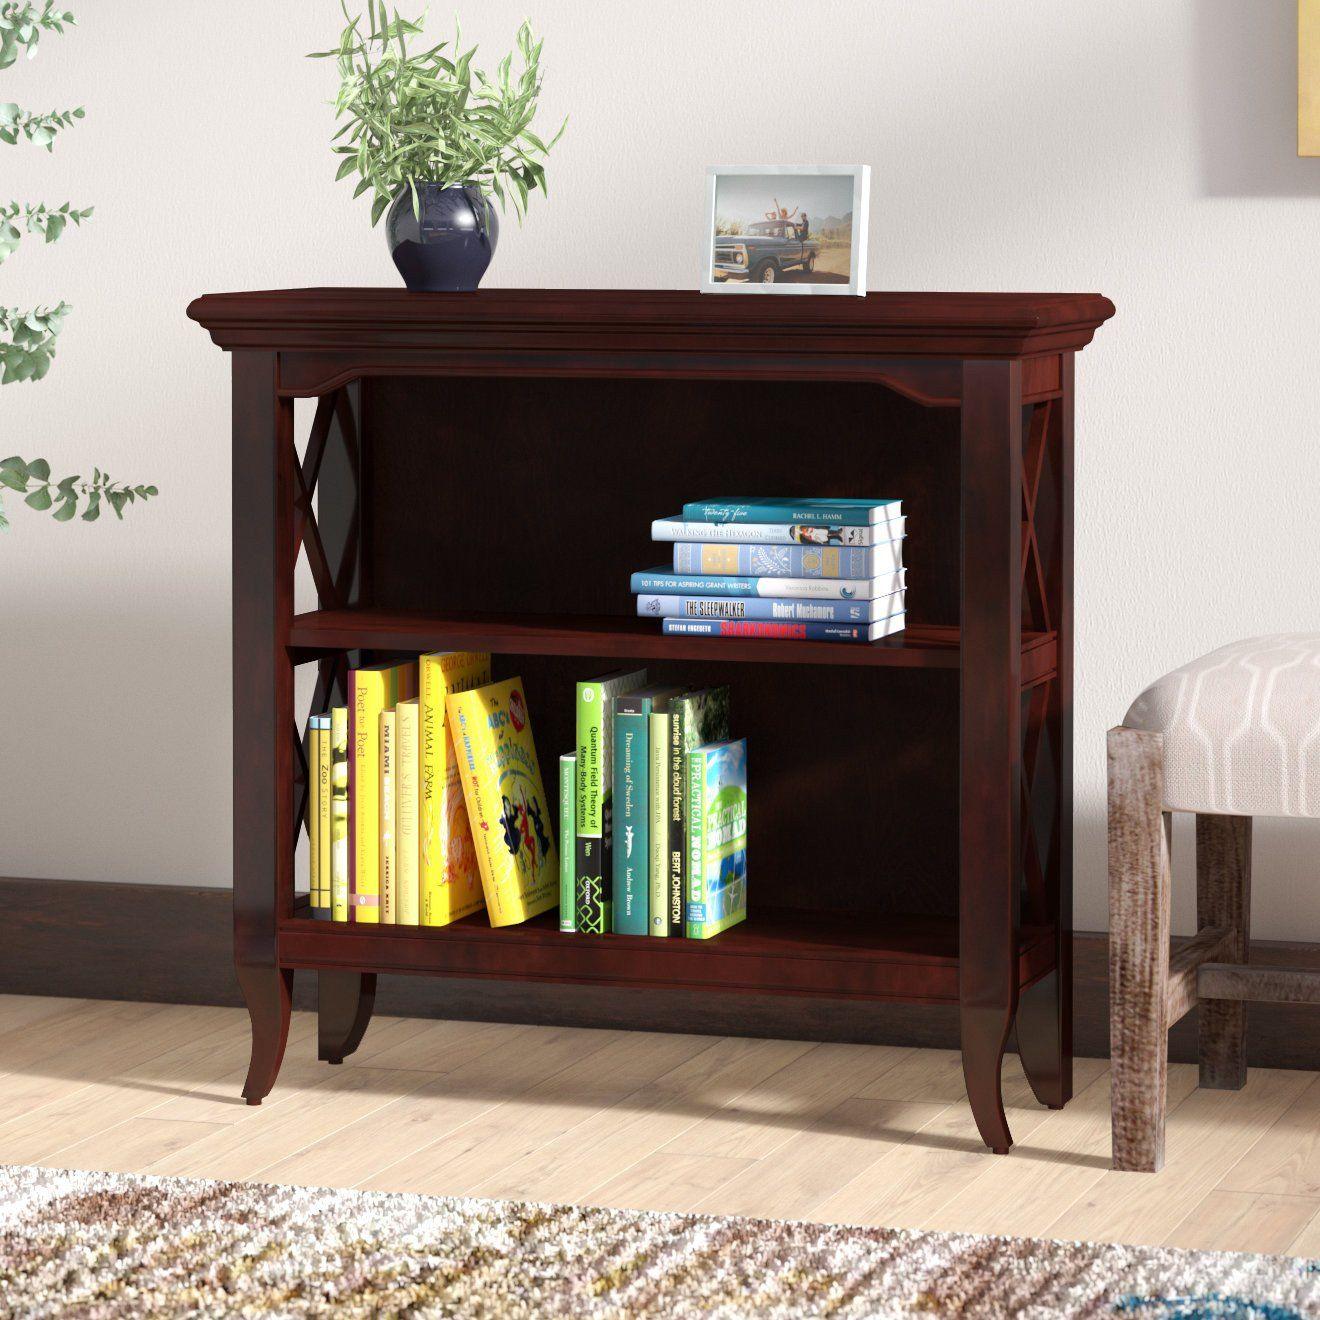 5 Shelf Wood Bookcase Awesome 24 Inch Wide Bookcase You Ll Love In 2019 In 2020 Bookcase Etagere Bookcase Wood Bookcase